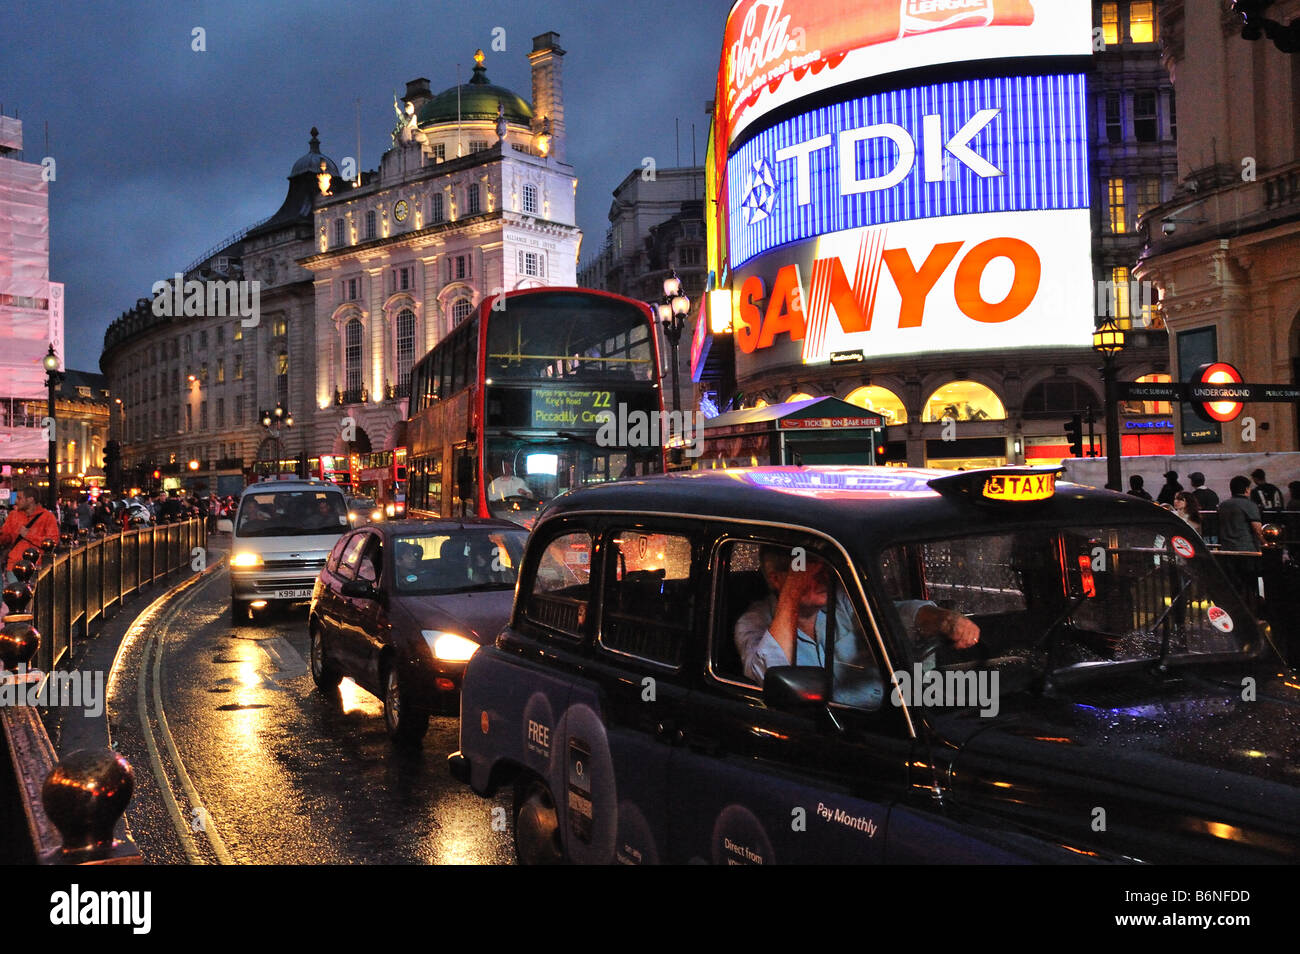 Piccadilly Circus, evening, London, UK - Stock Image